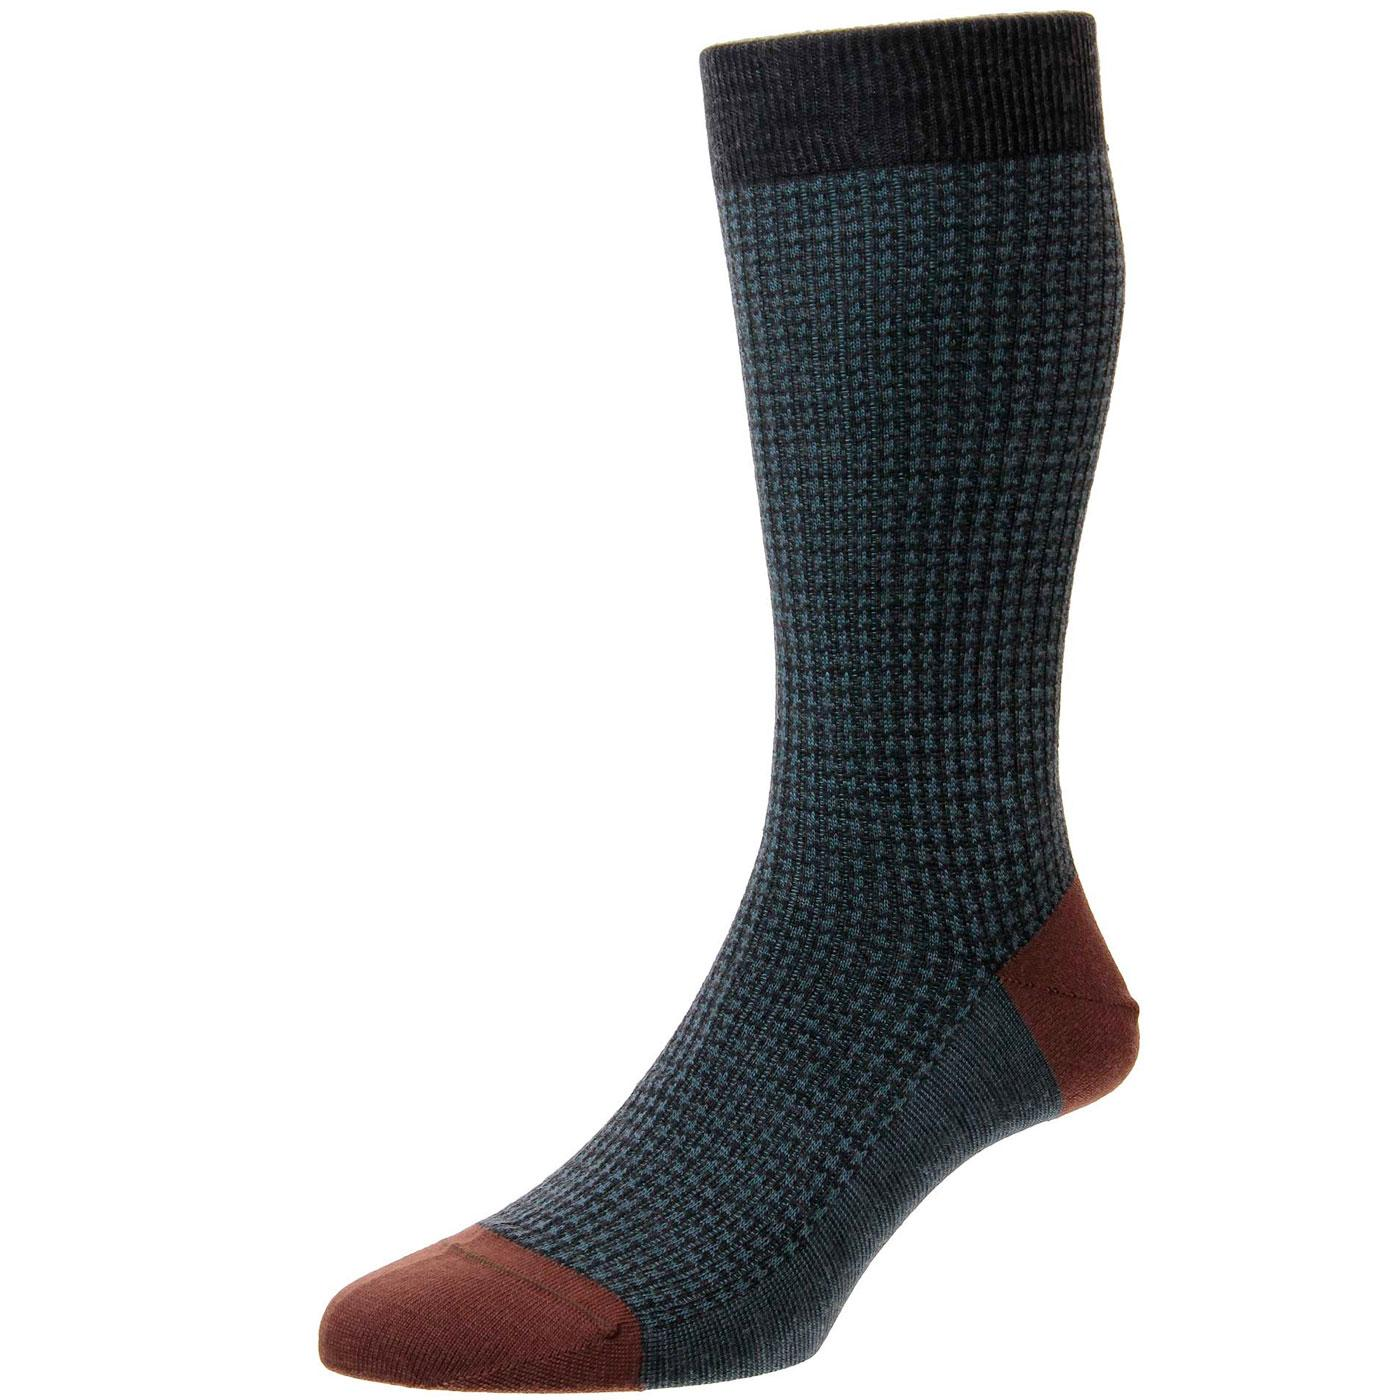 + Hatherley PANTHERELLA Houndstooth Socks CHARCOAL